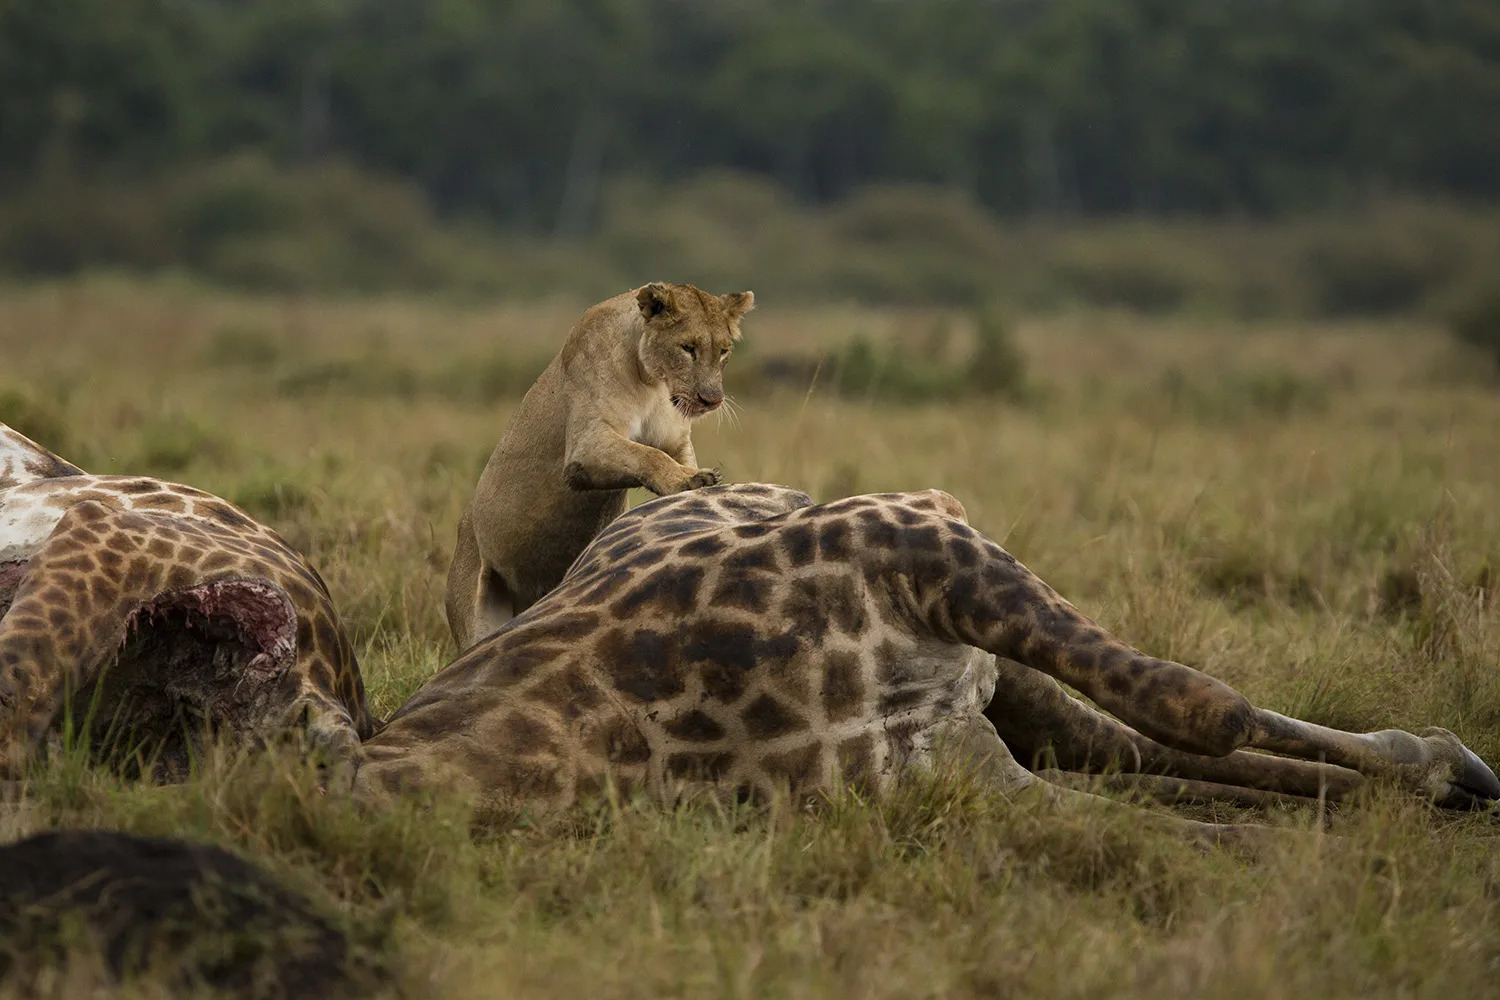 Giraffe corpses and lion